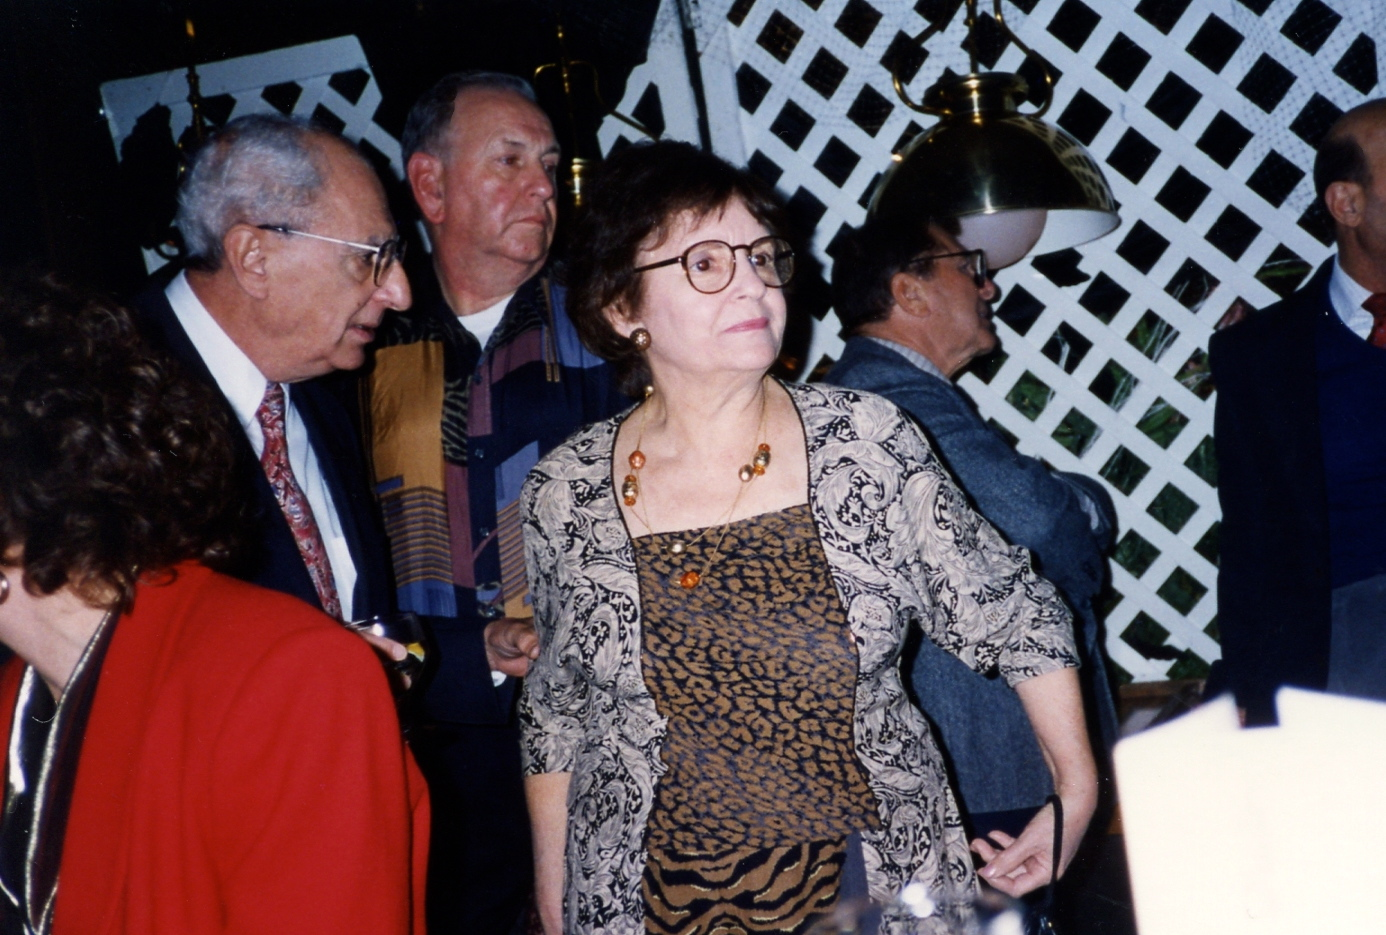 1994-11-20 RELEASE PARTY (18).jpg